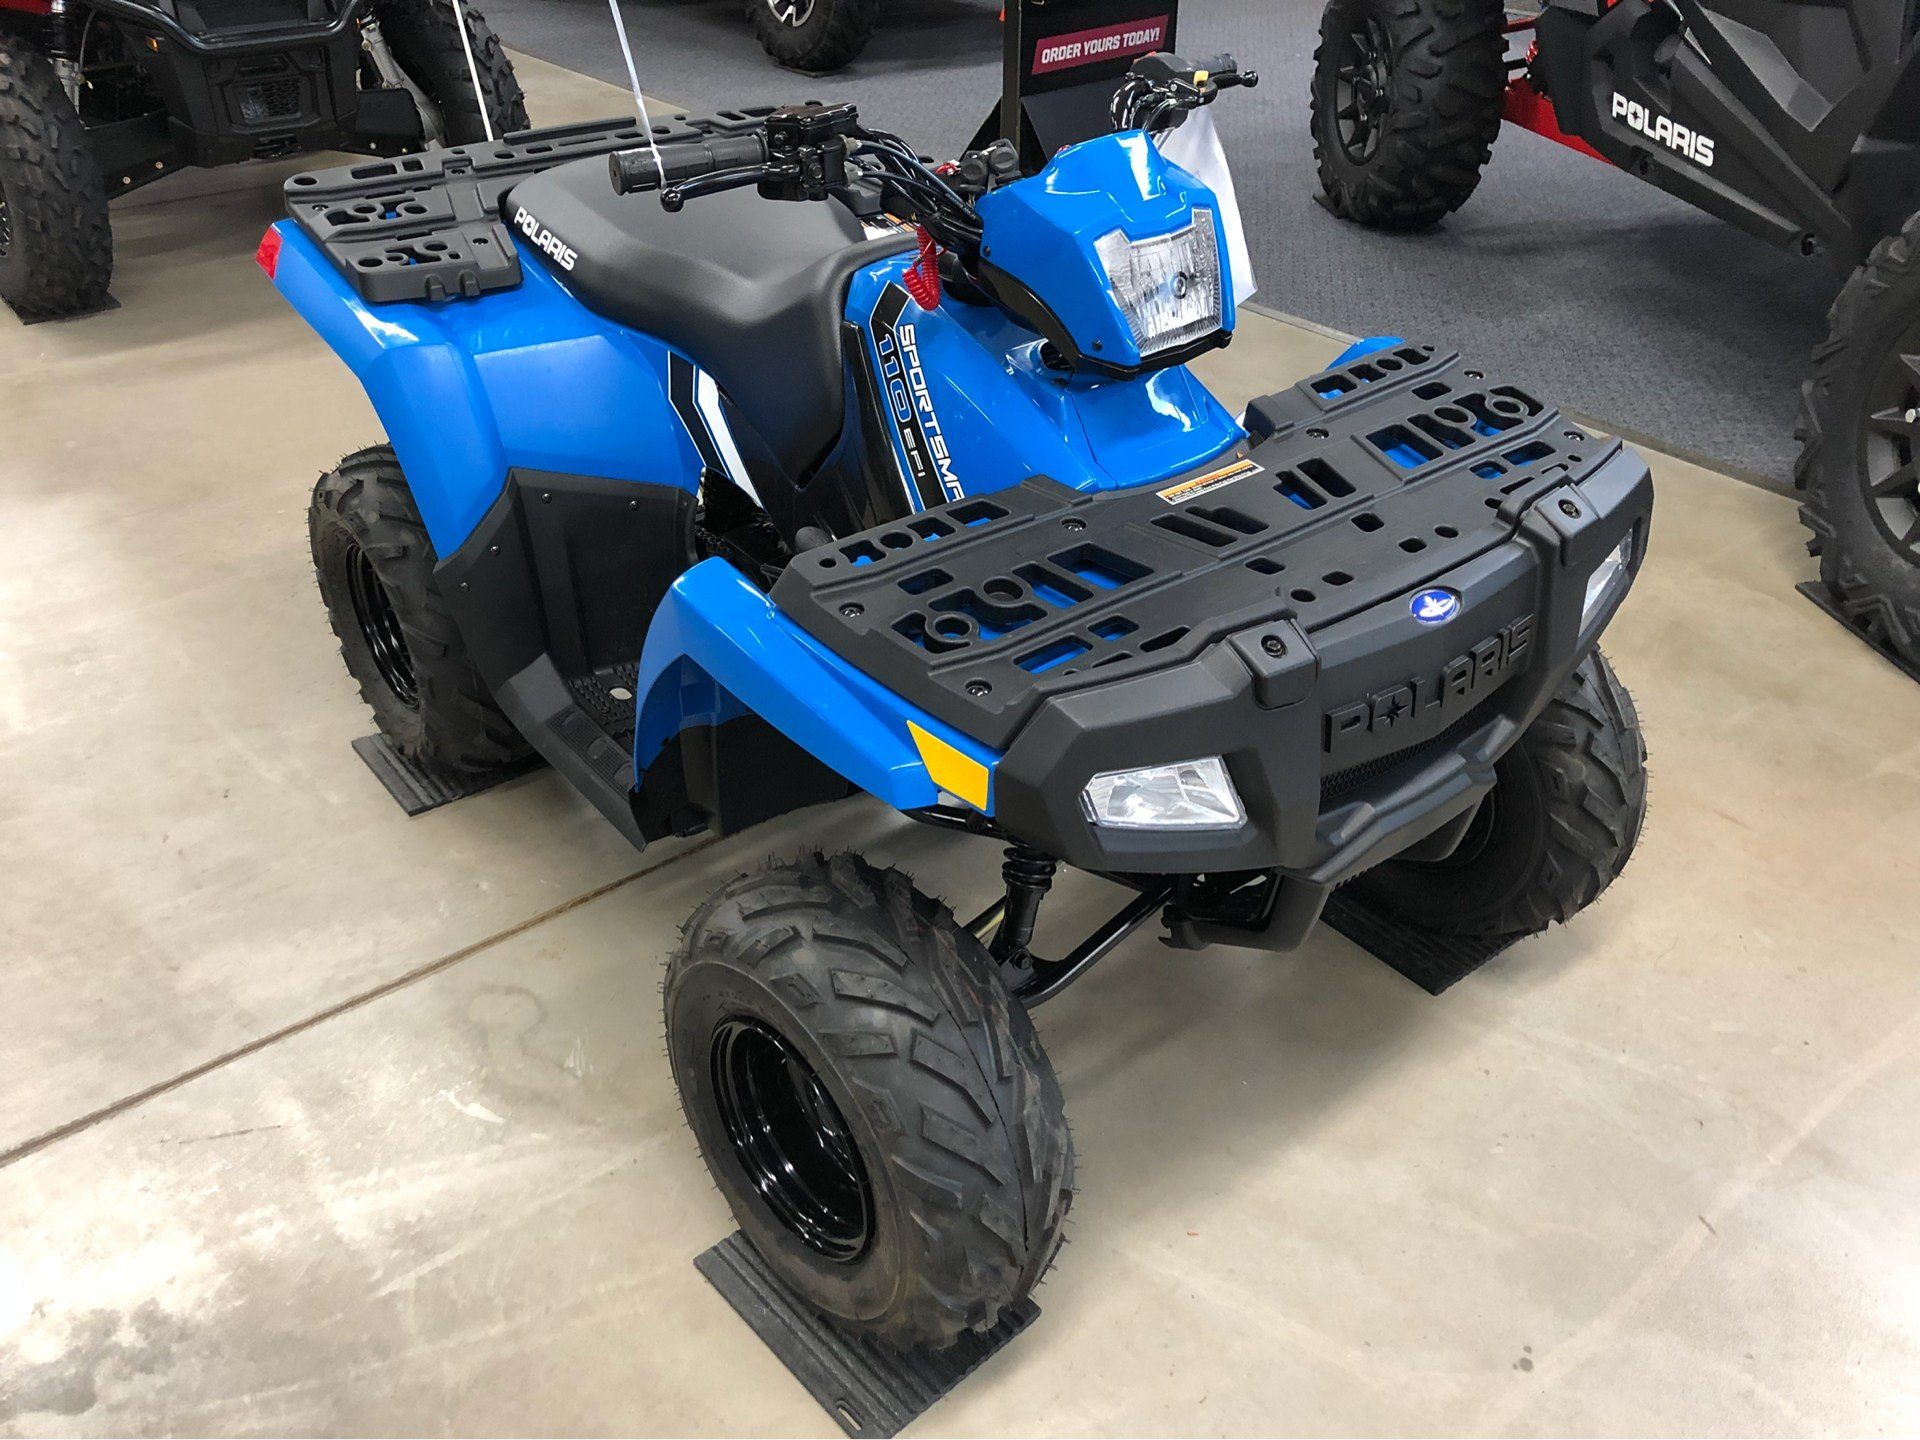 2018 Polaris Sportsman 110 for sale 15385